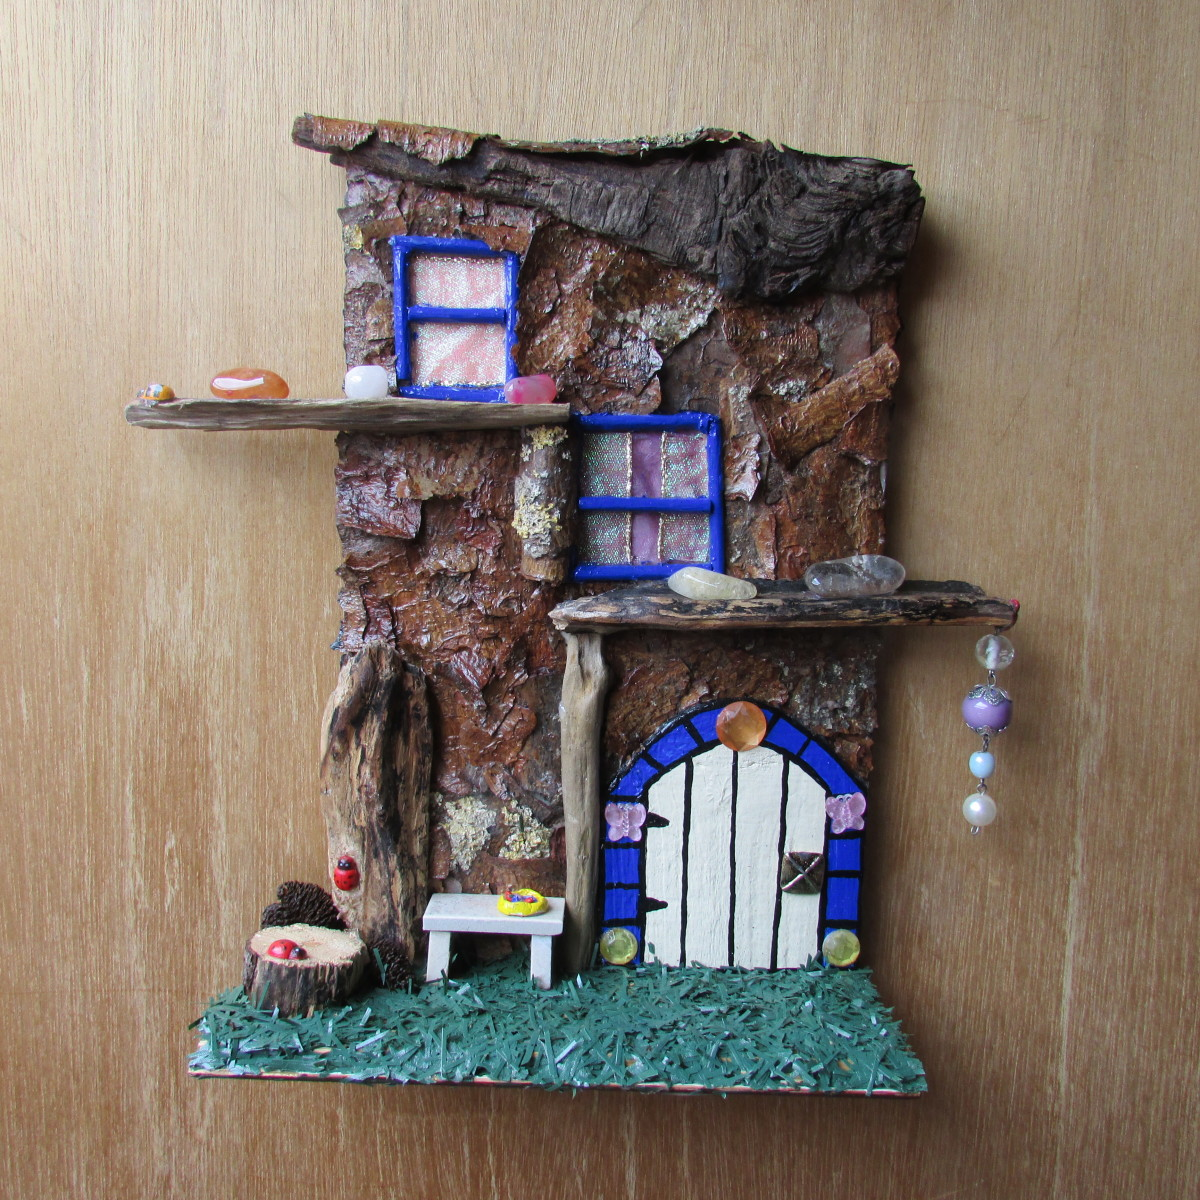 Learn how to make windows and doors for a fairy tree house.